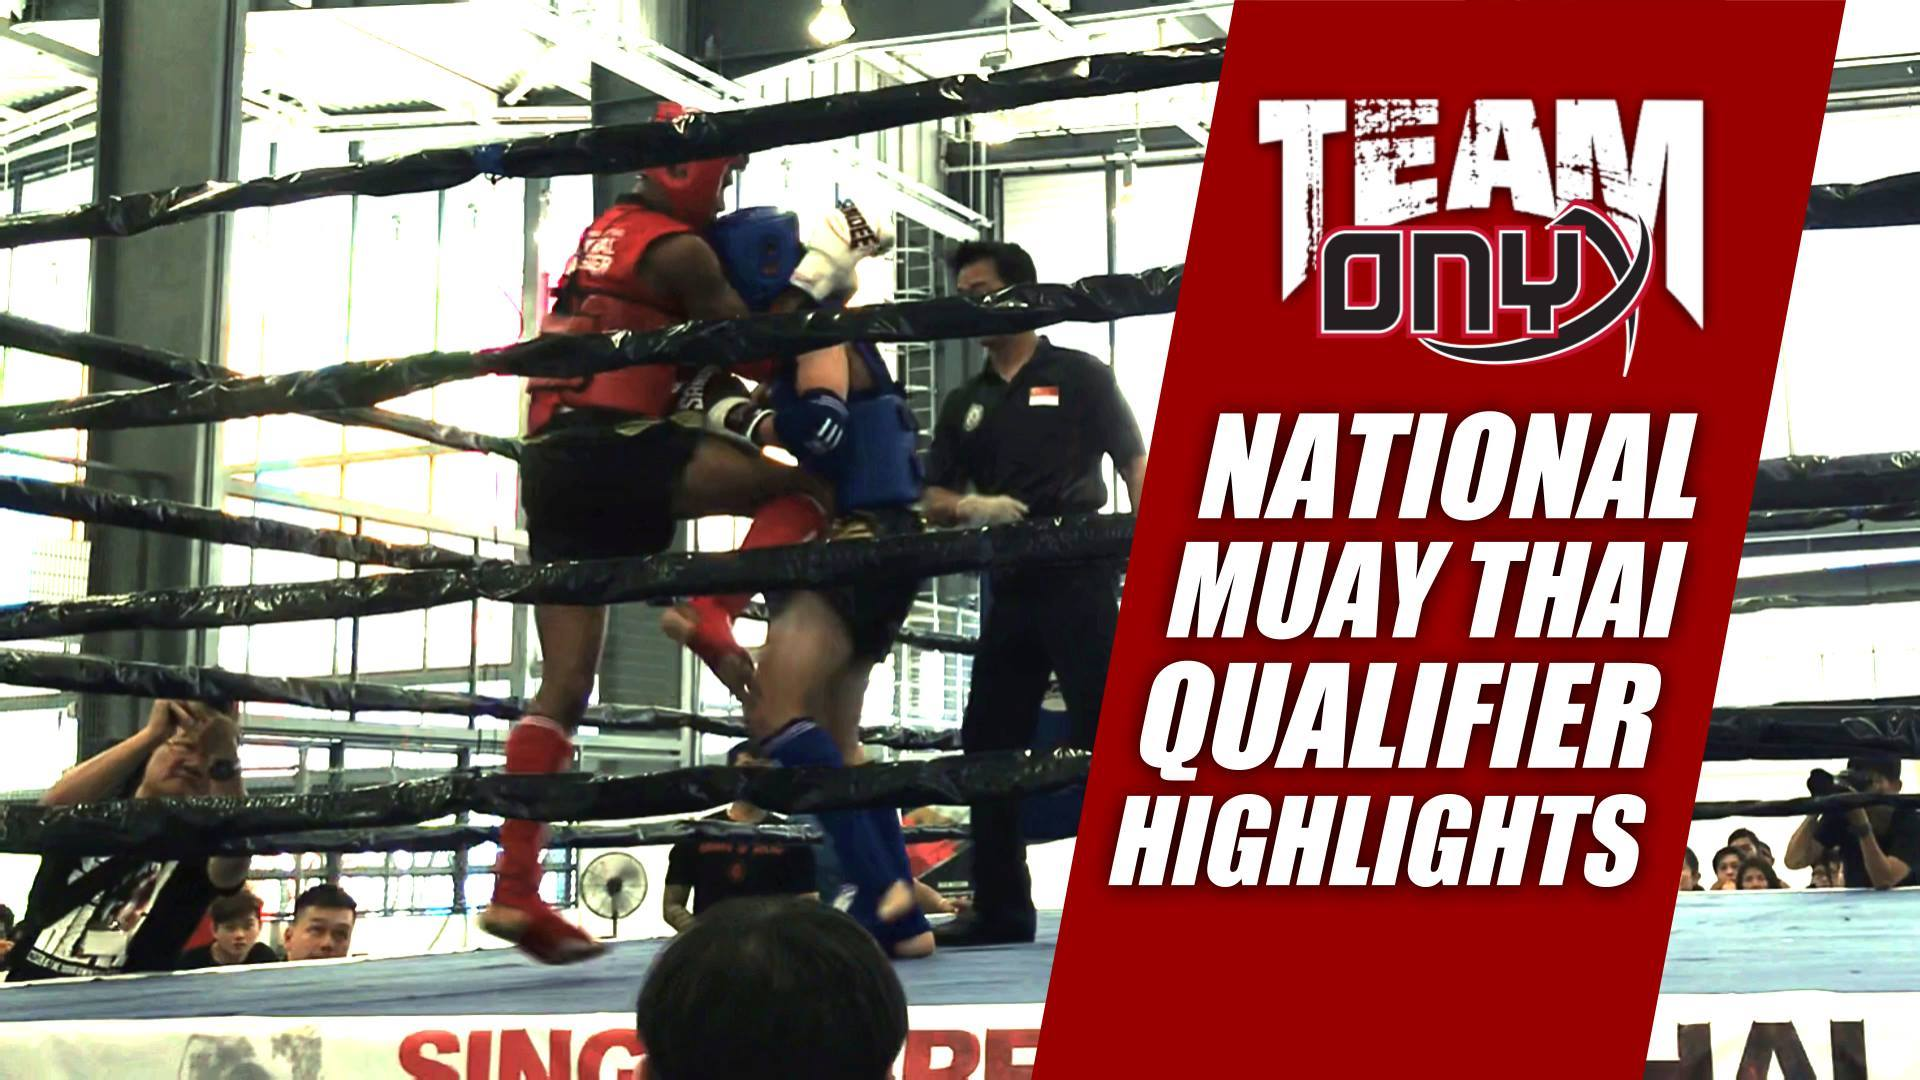 National Muay Thai Qualifier 2019 #1 - Onyx Highlights